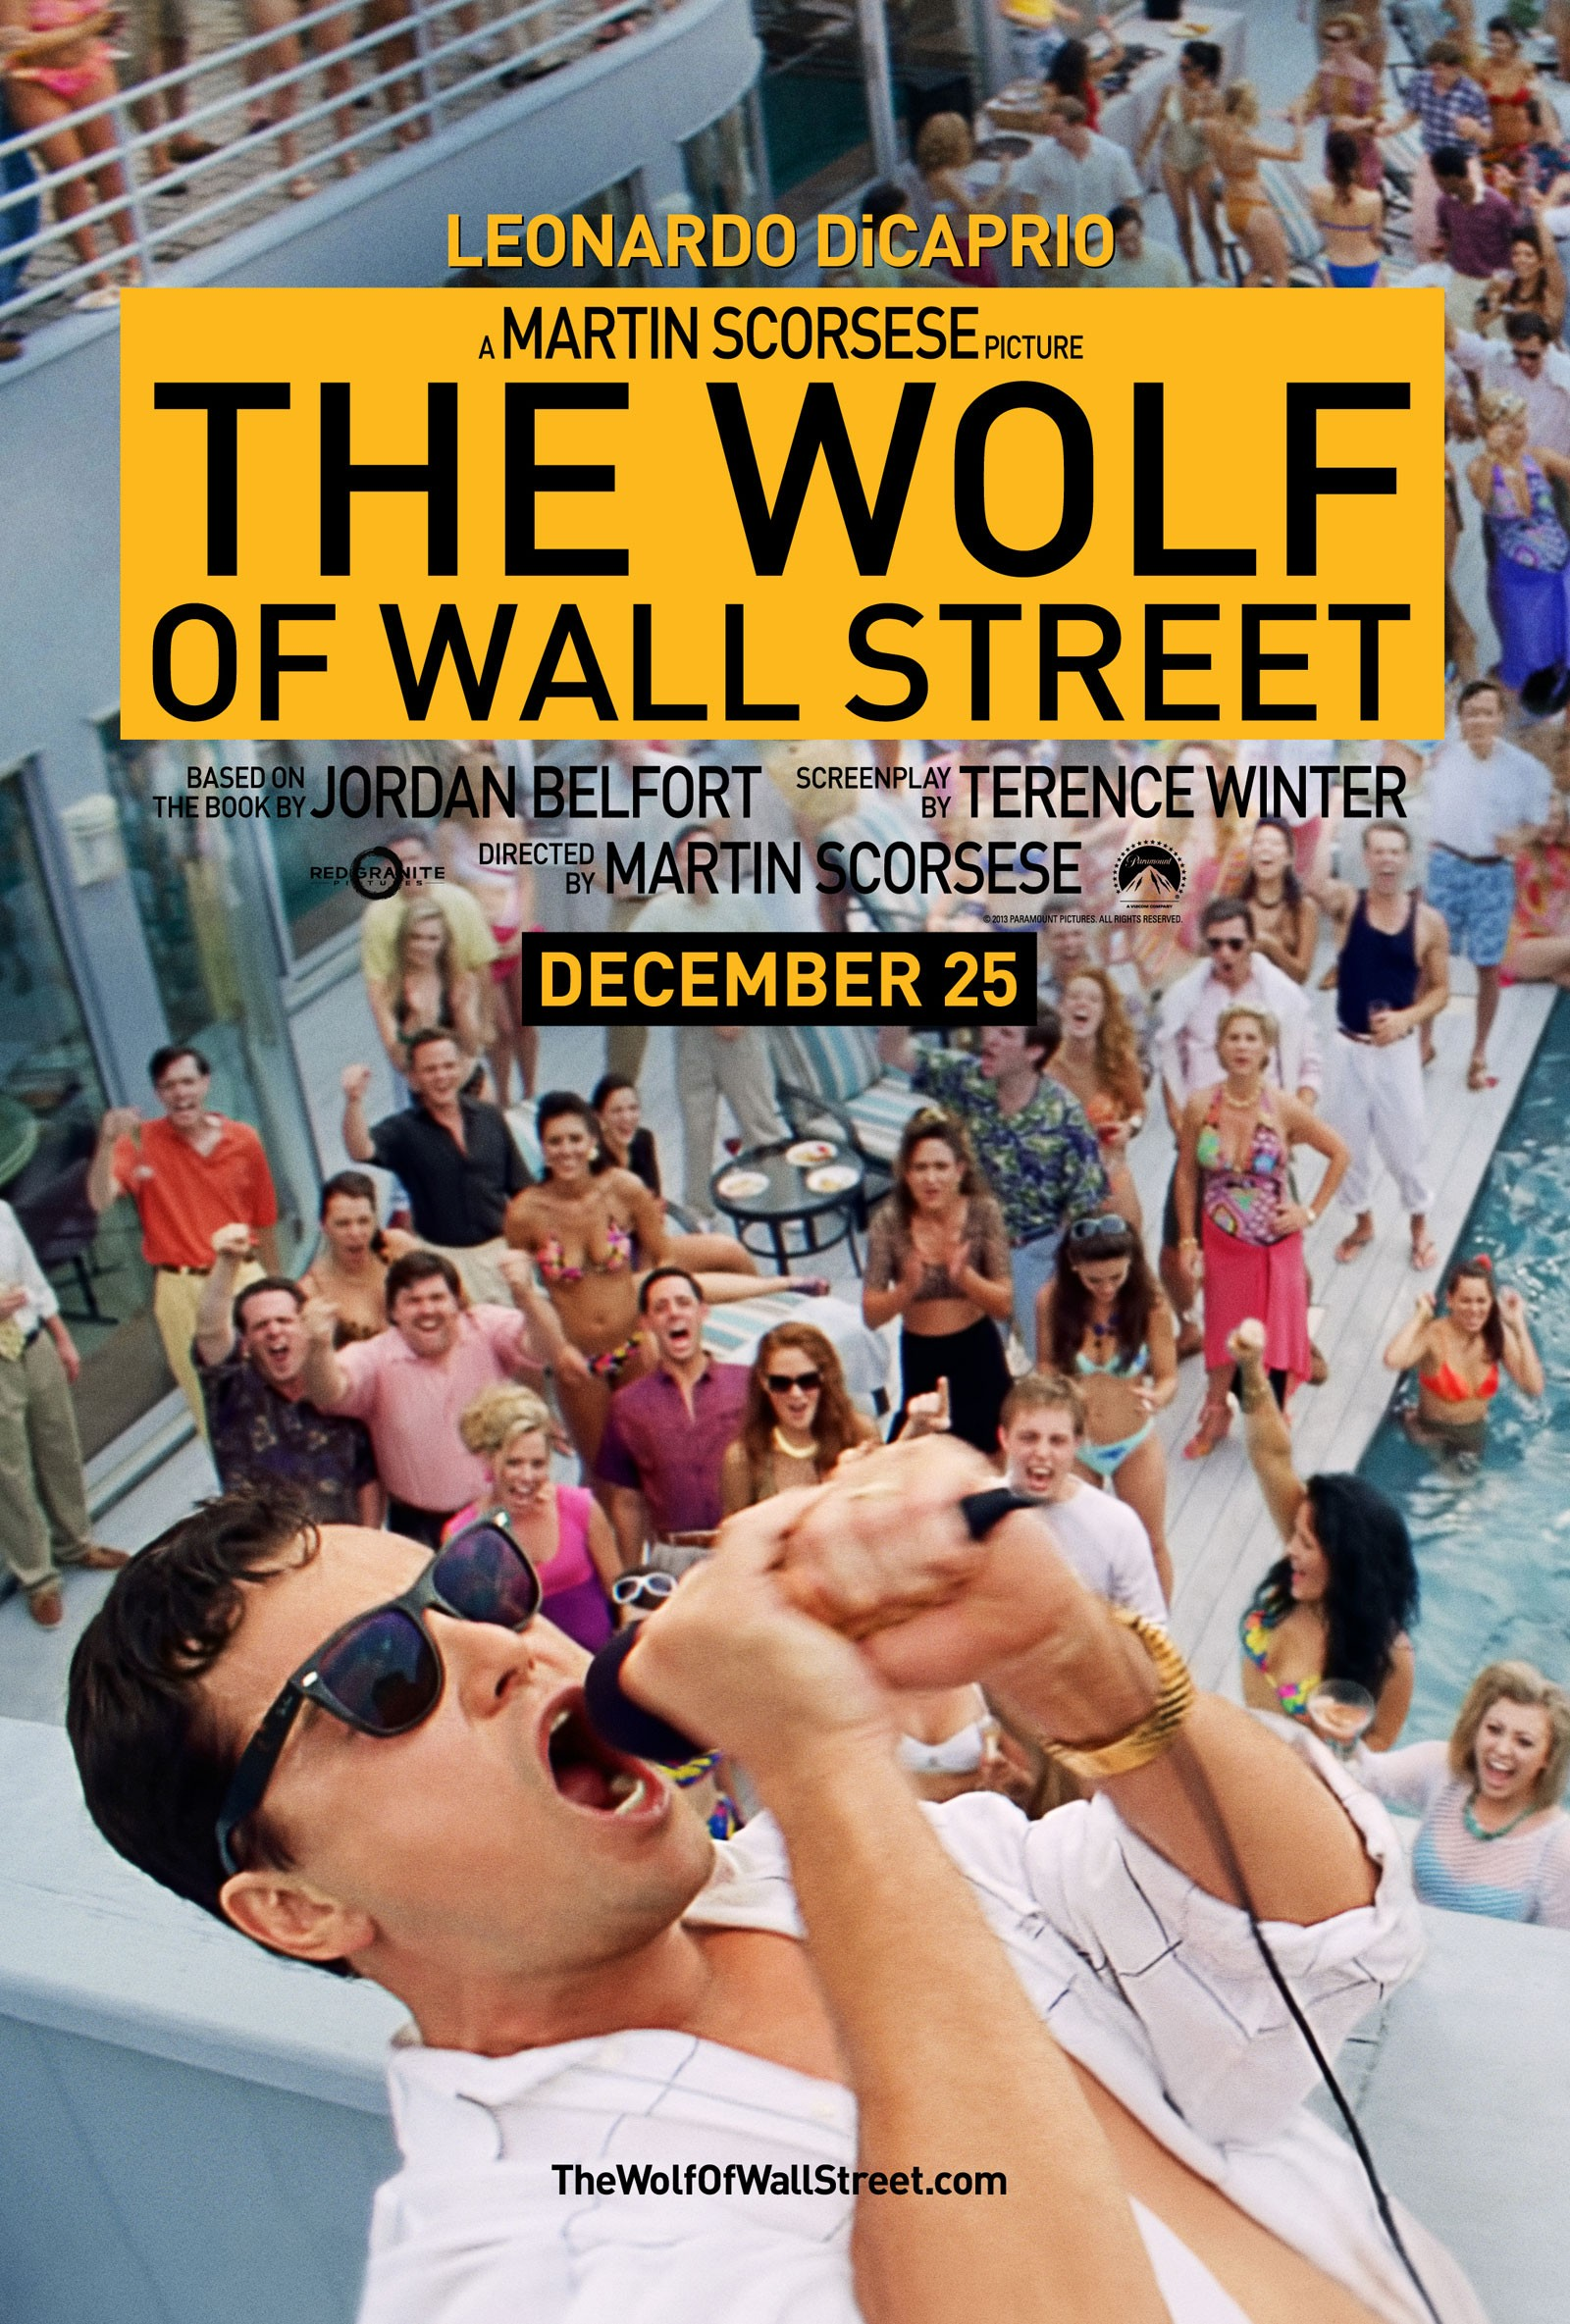 The Wolf of Wall Street-Official Poster Banner PROMO POSTER-25NOVEMBRO2013-01 (2)